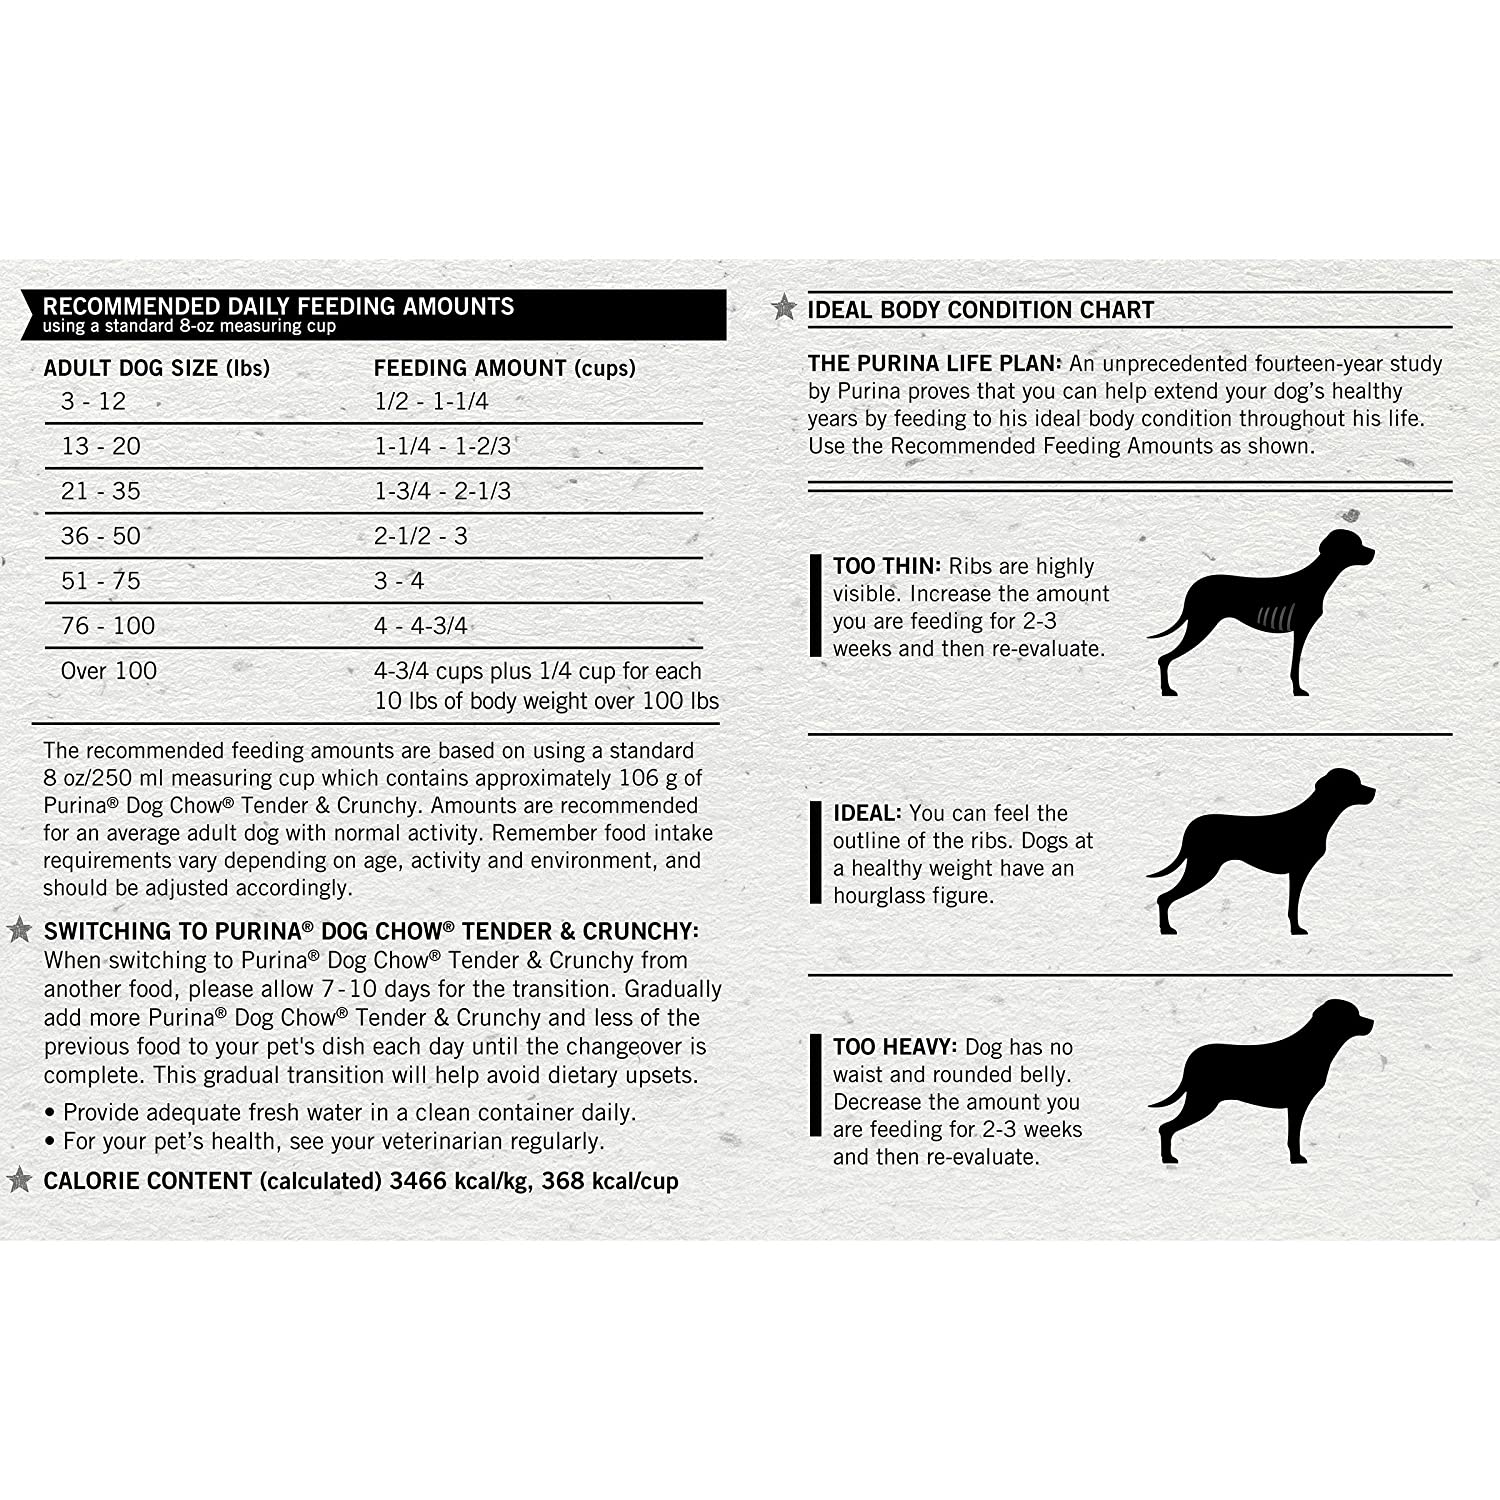 Yellow lab growth chart choice image free any chart examples chocolate lab growth chart choice image free any chart examples yellow lab weight chart gallery free nvjuhfo Images